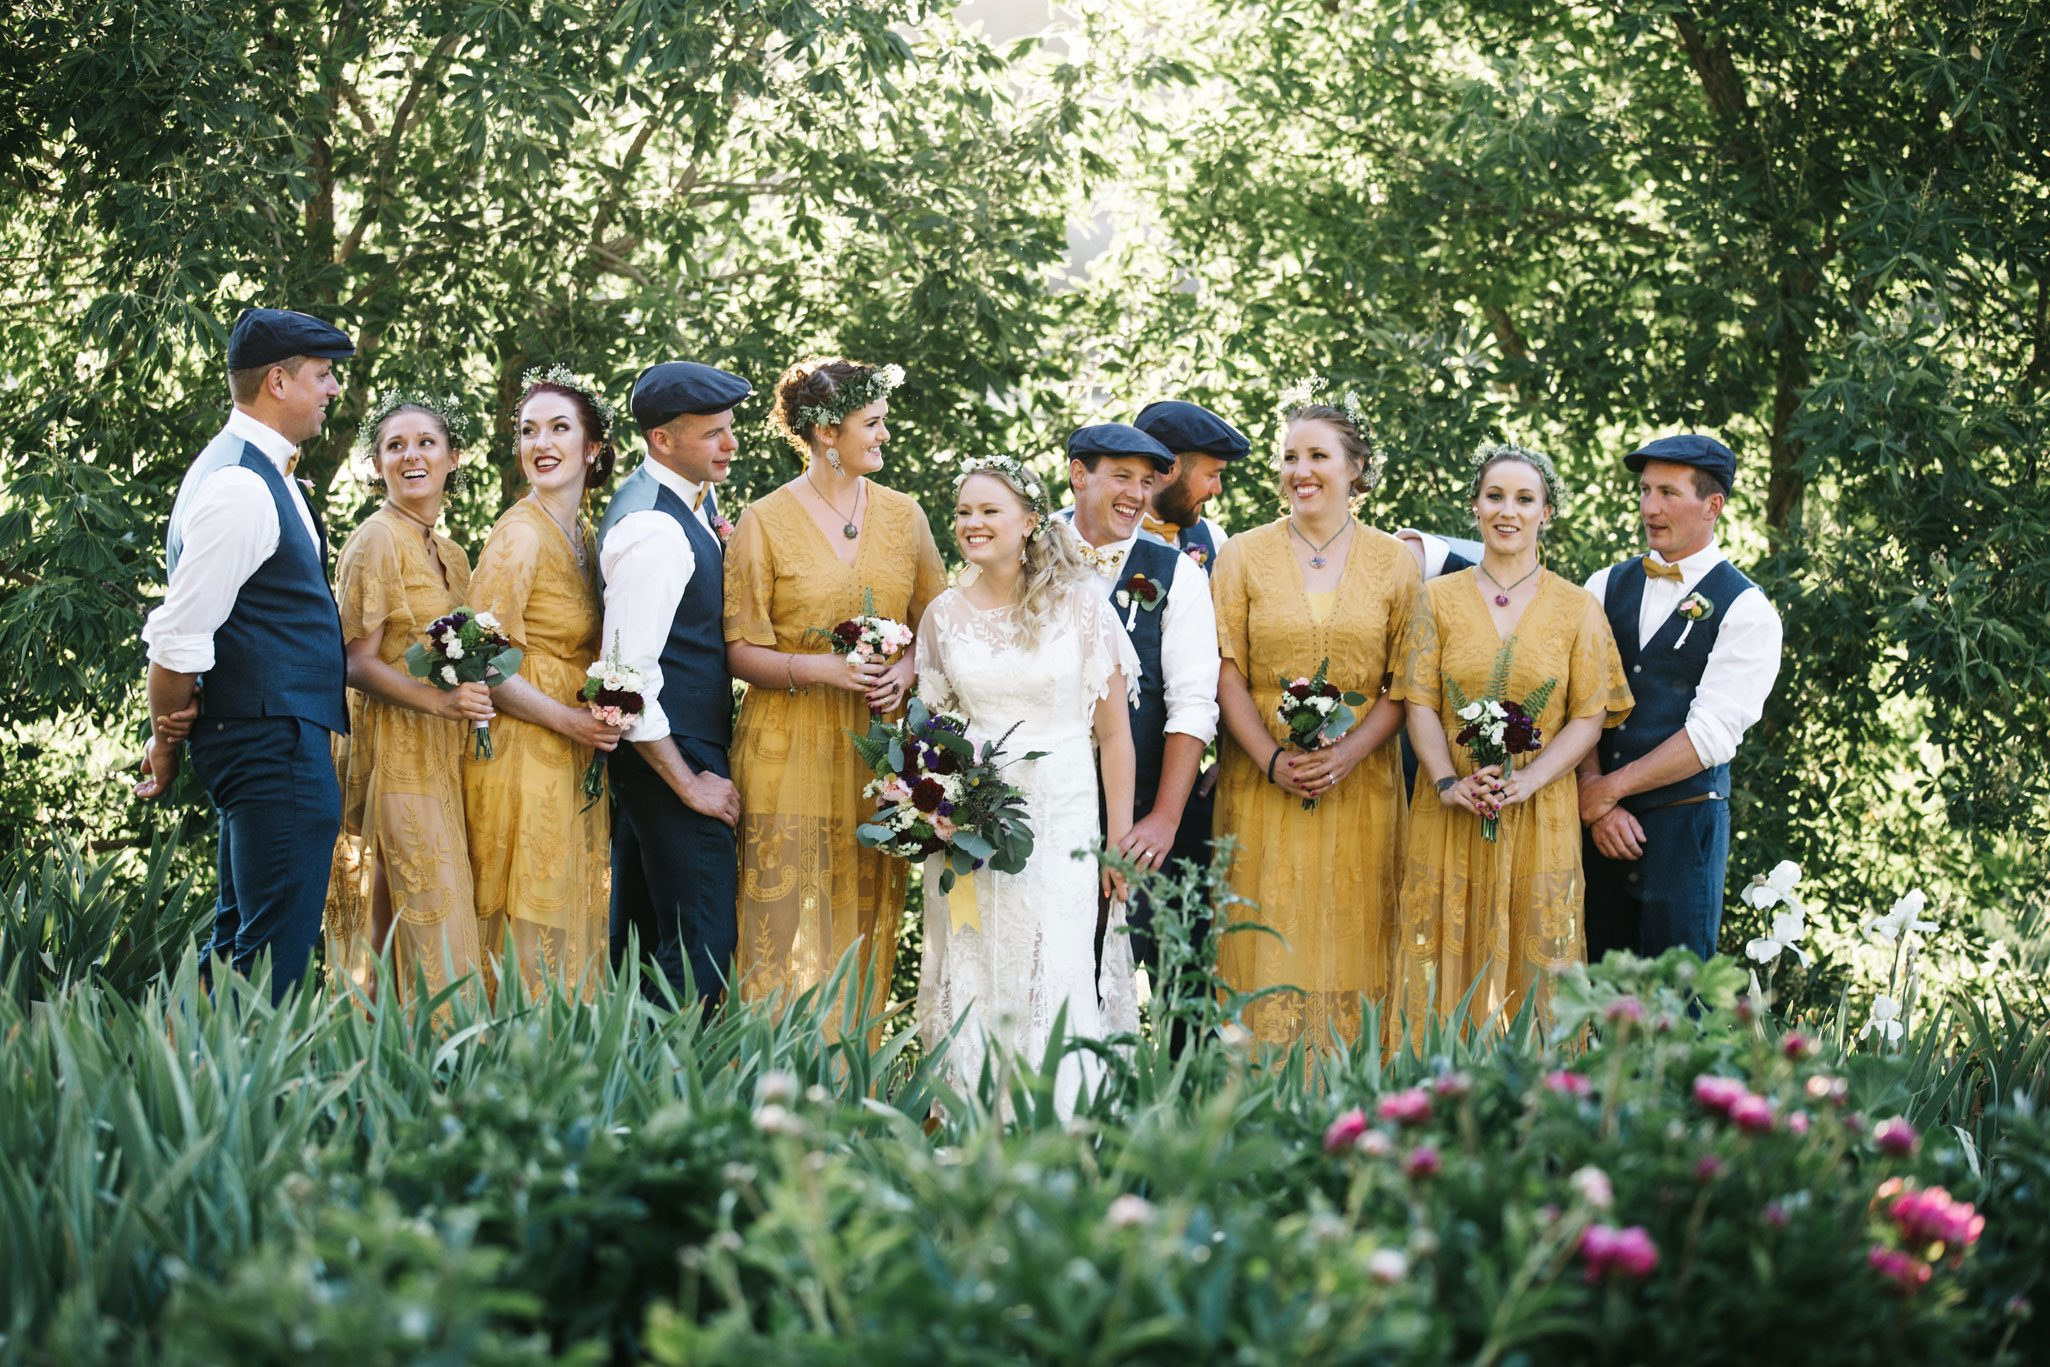 Wedding party at Ridgewood Event Center in Durango, Colorado